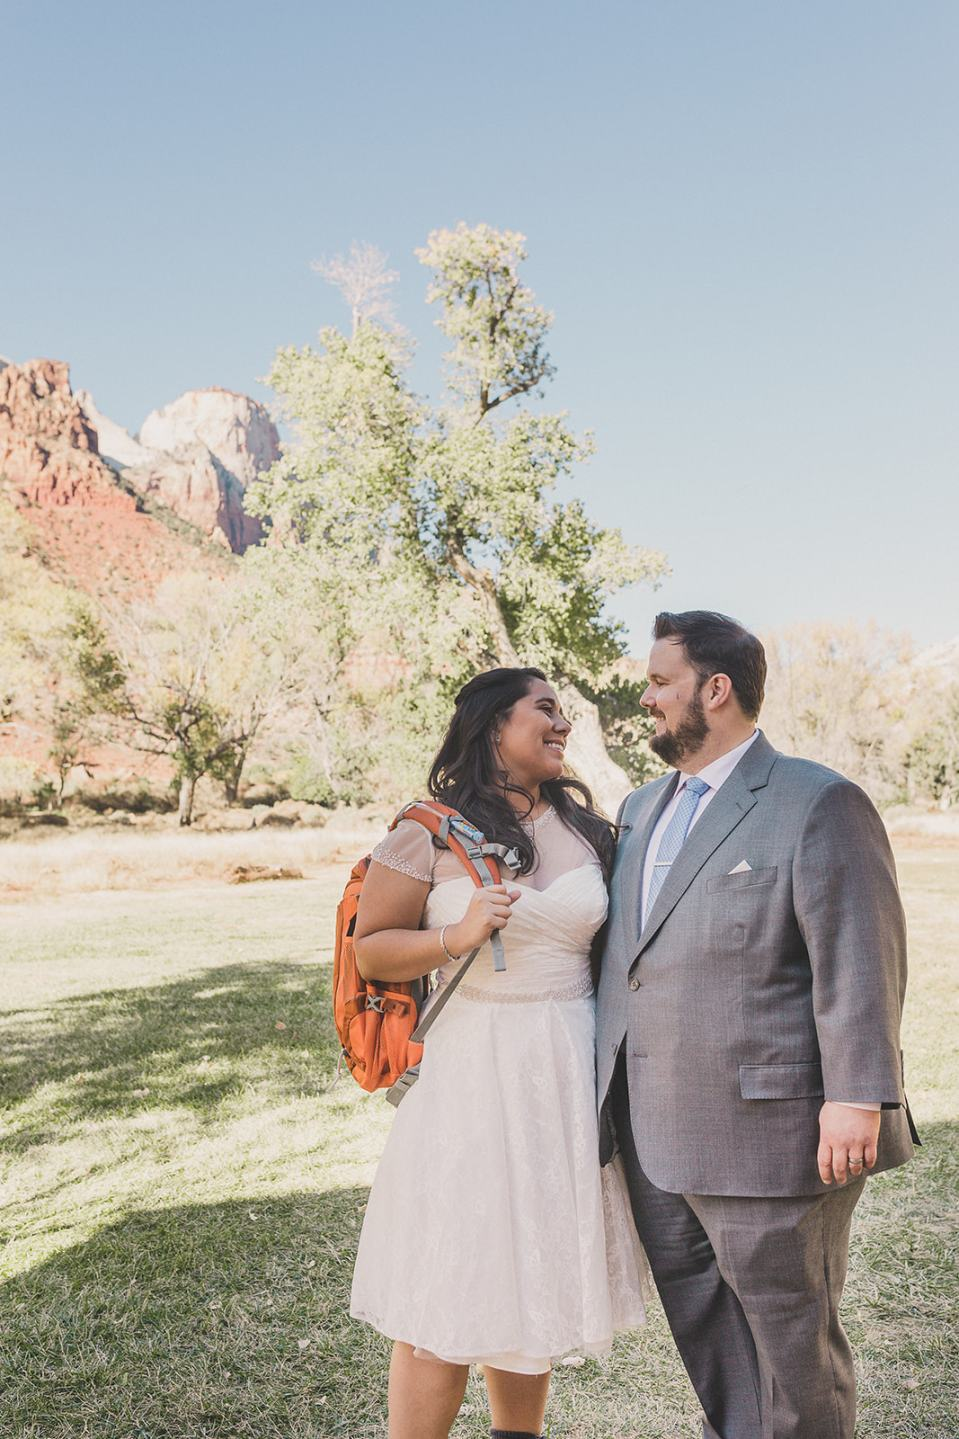 newlyweds prepare to hike in Zion National Park photographed by Taylor Made Photography